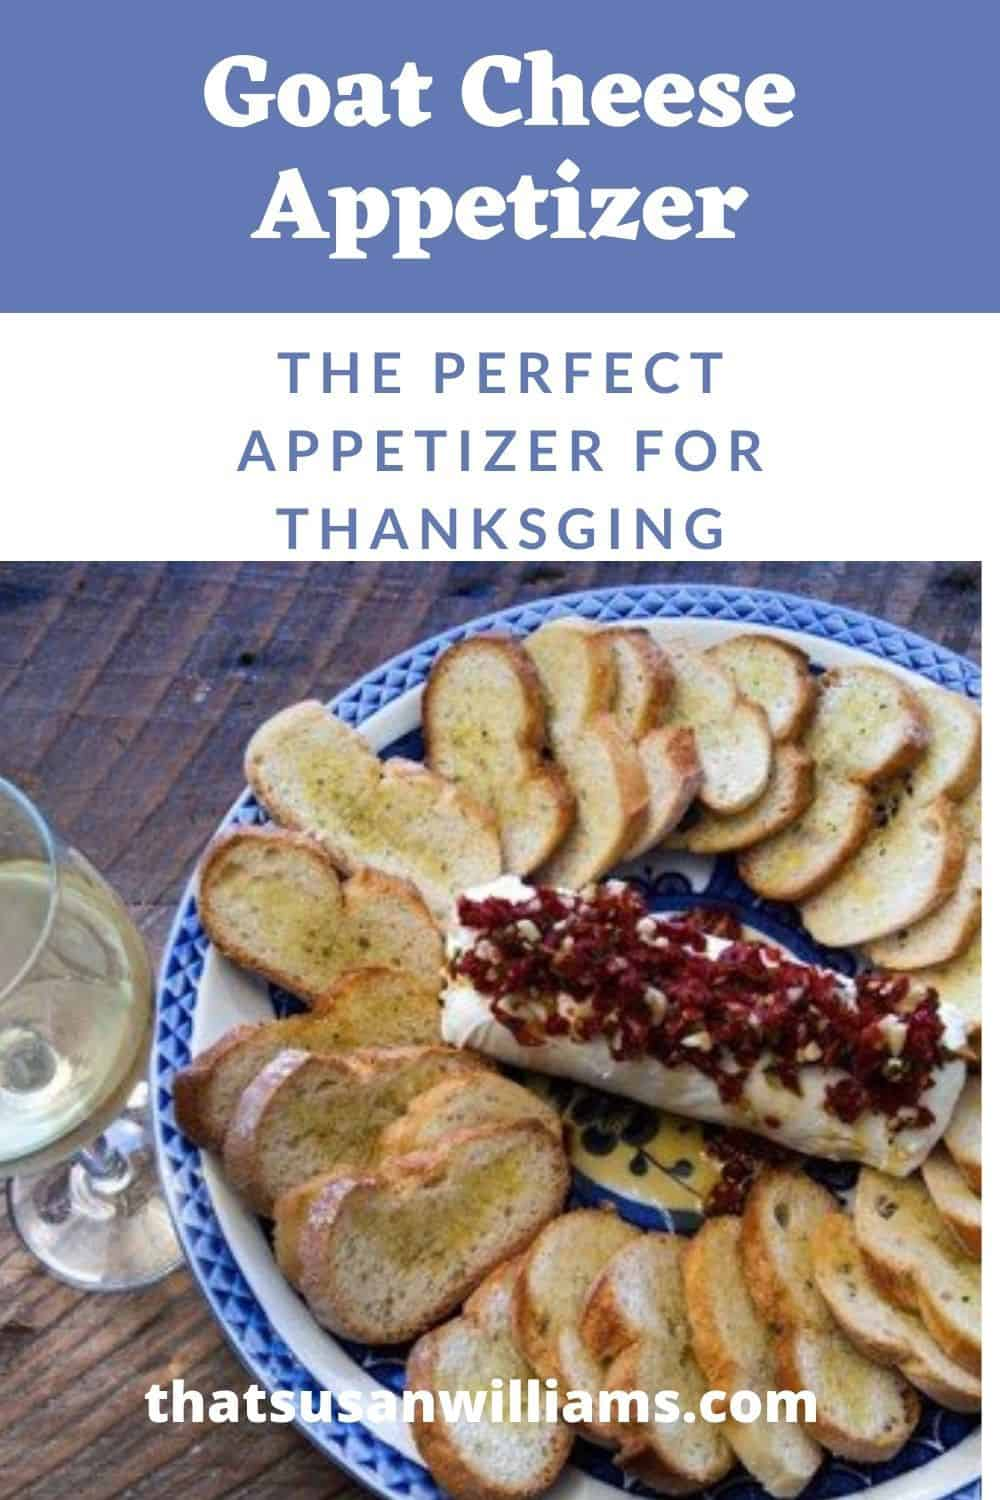 Goat Cheese Appetizer: the perfect appetizer for Thanksgiving